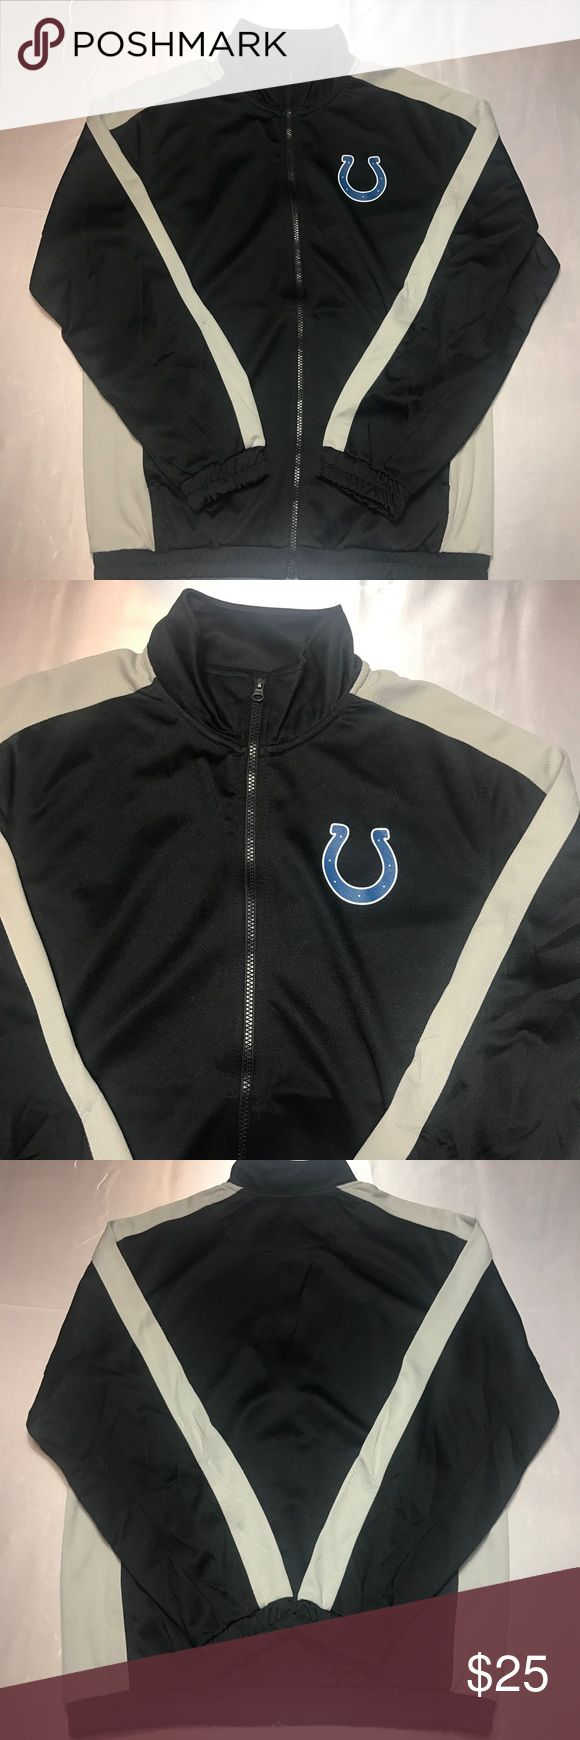 Indianapolis Colts Full Zip Jacket Men's Indianapolis Colts Full Zip Jacket. Size Medium. Very good condition, no flaws. Purchased from NFL online store. Clean!! NFL Jackets & Coats